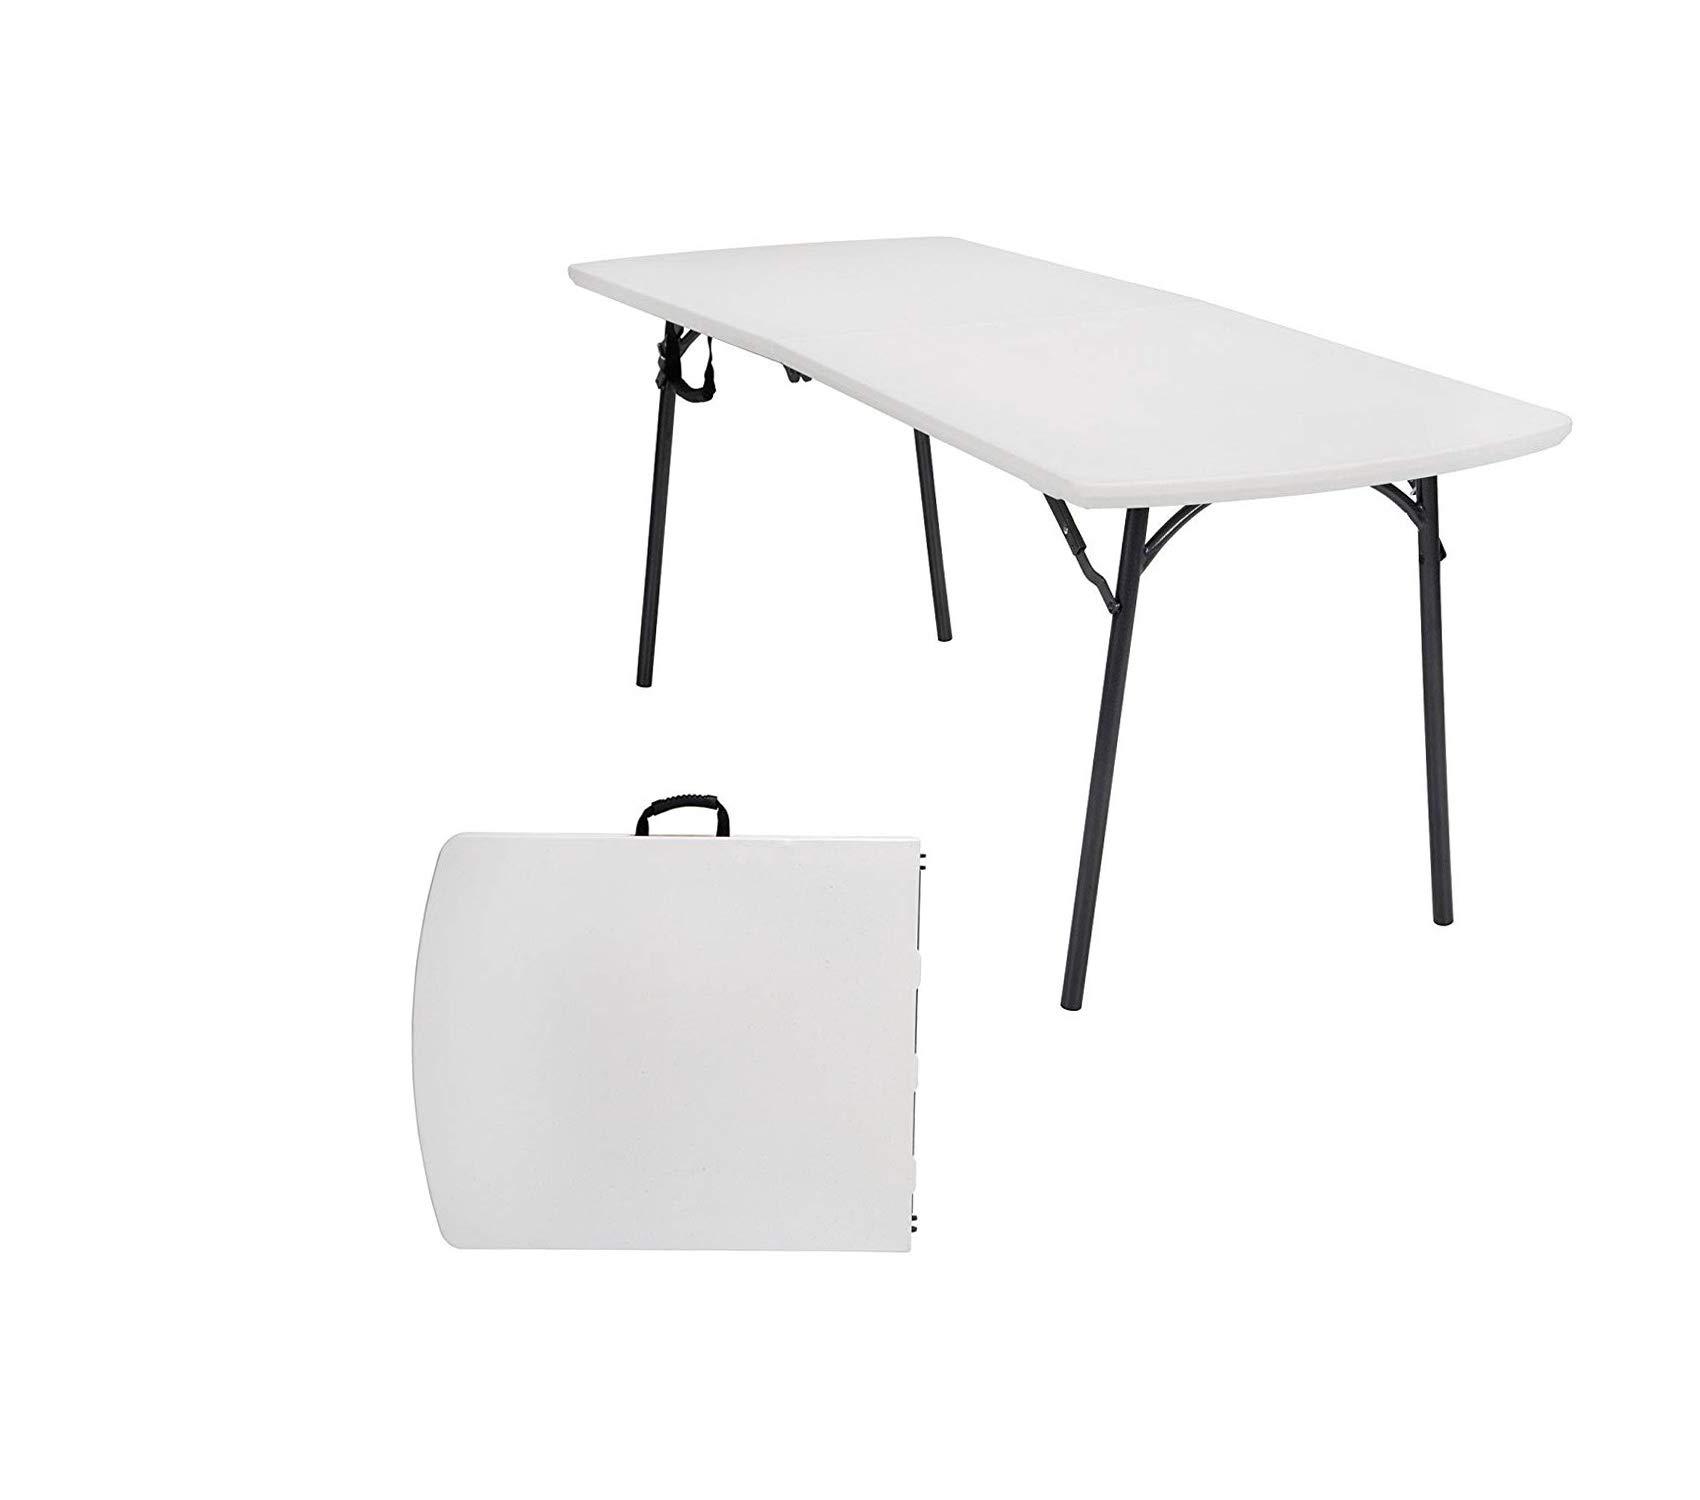 Office Home Furniture Premium Diamond Series 300 lb. Weight Capacity, 6 ft. x 30 in. Fold-in-Half Banquet Table, White Speckle with Hammer Tone Frame